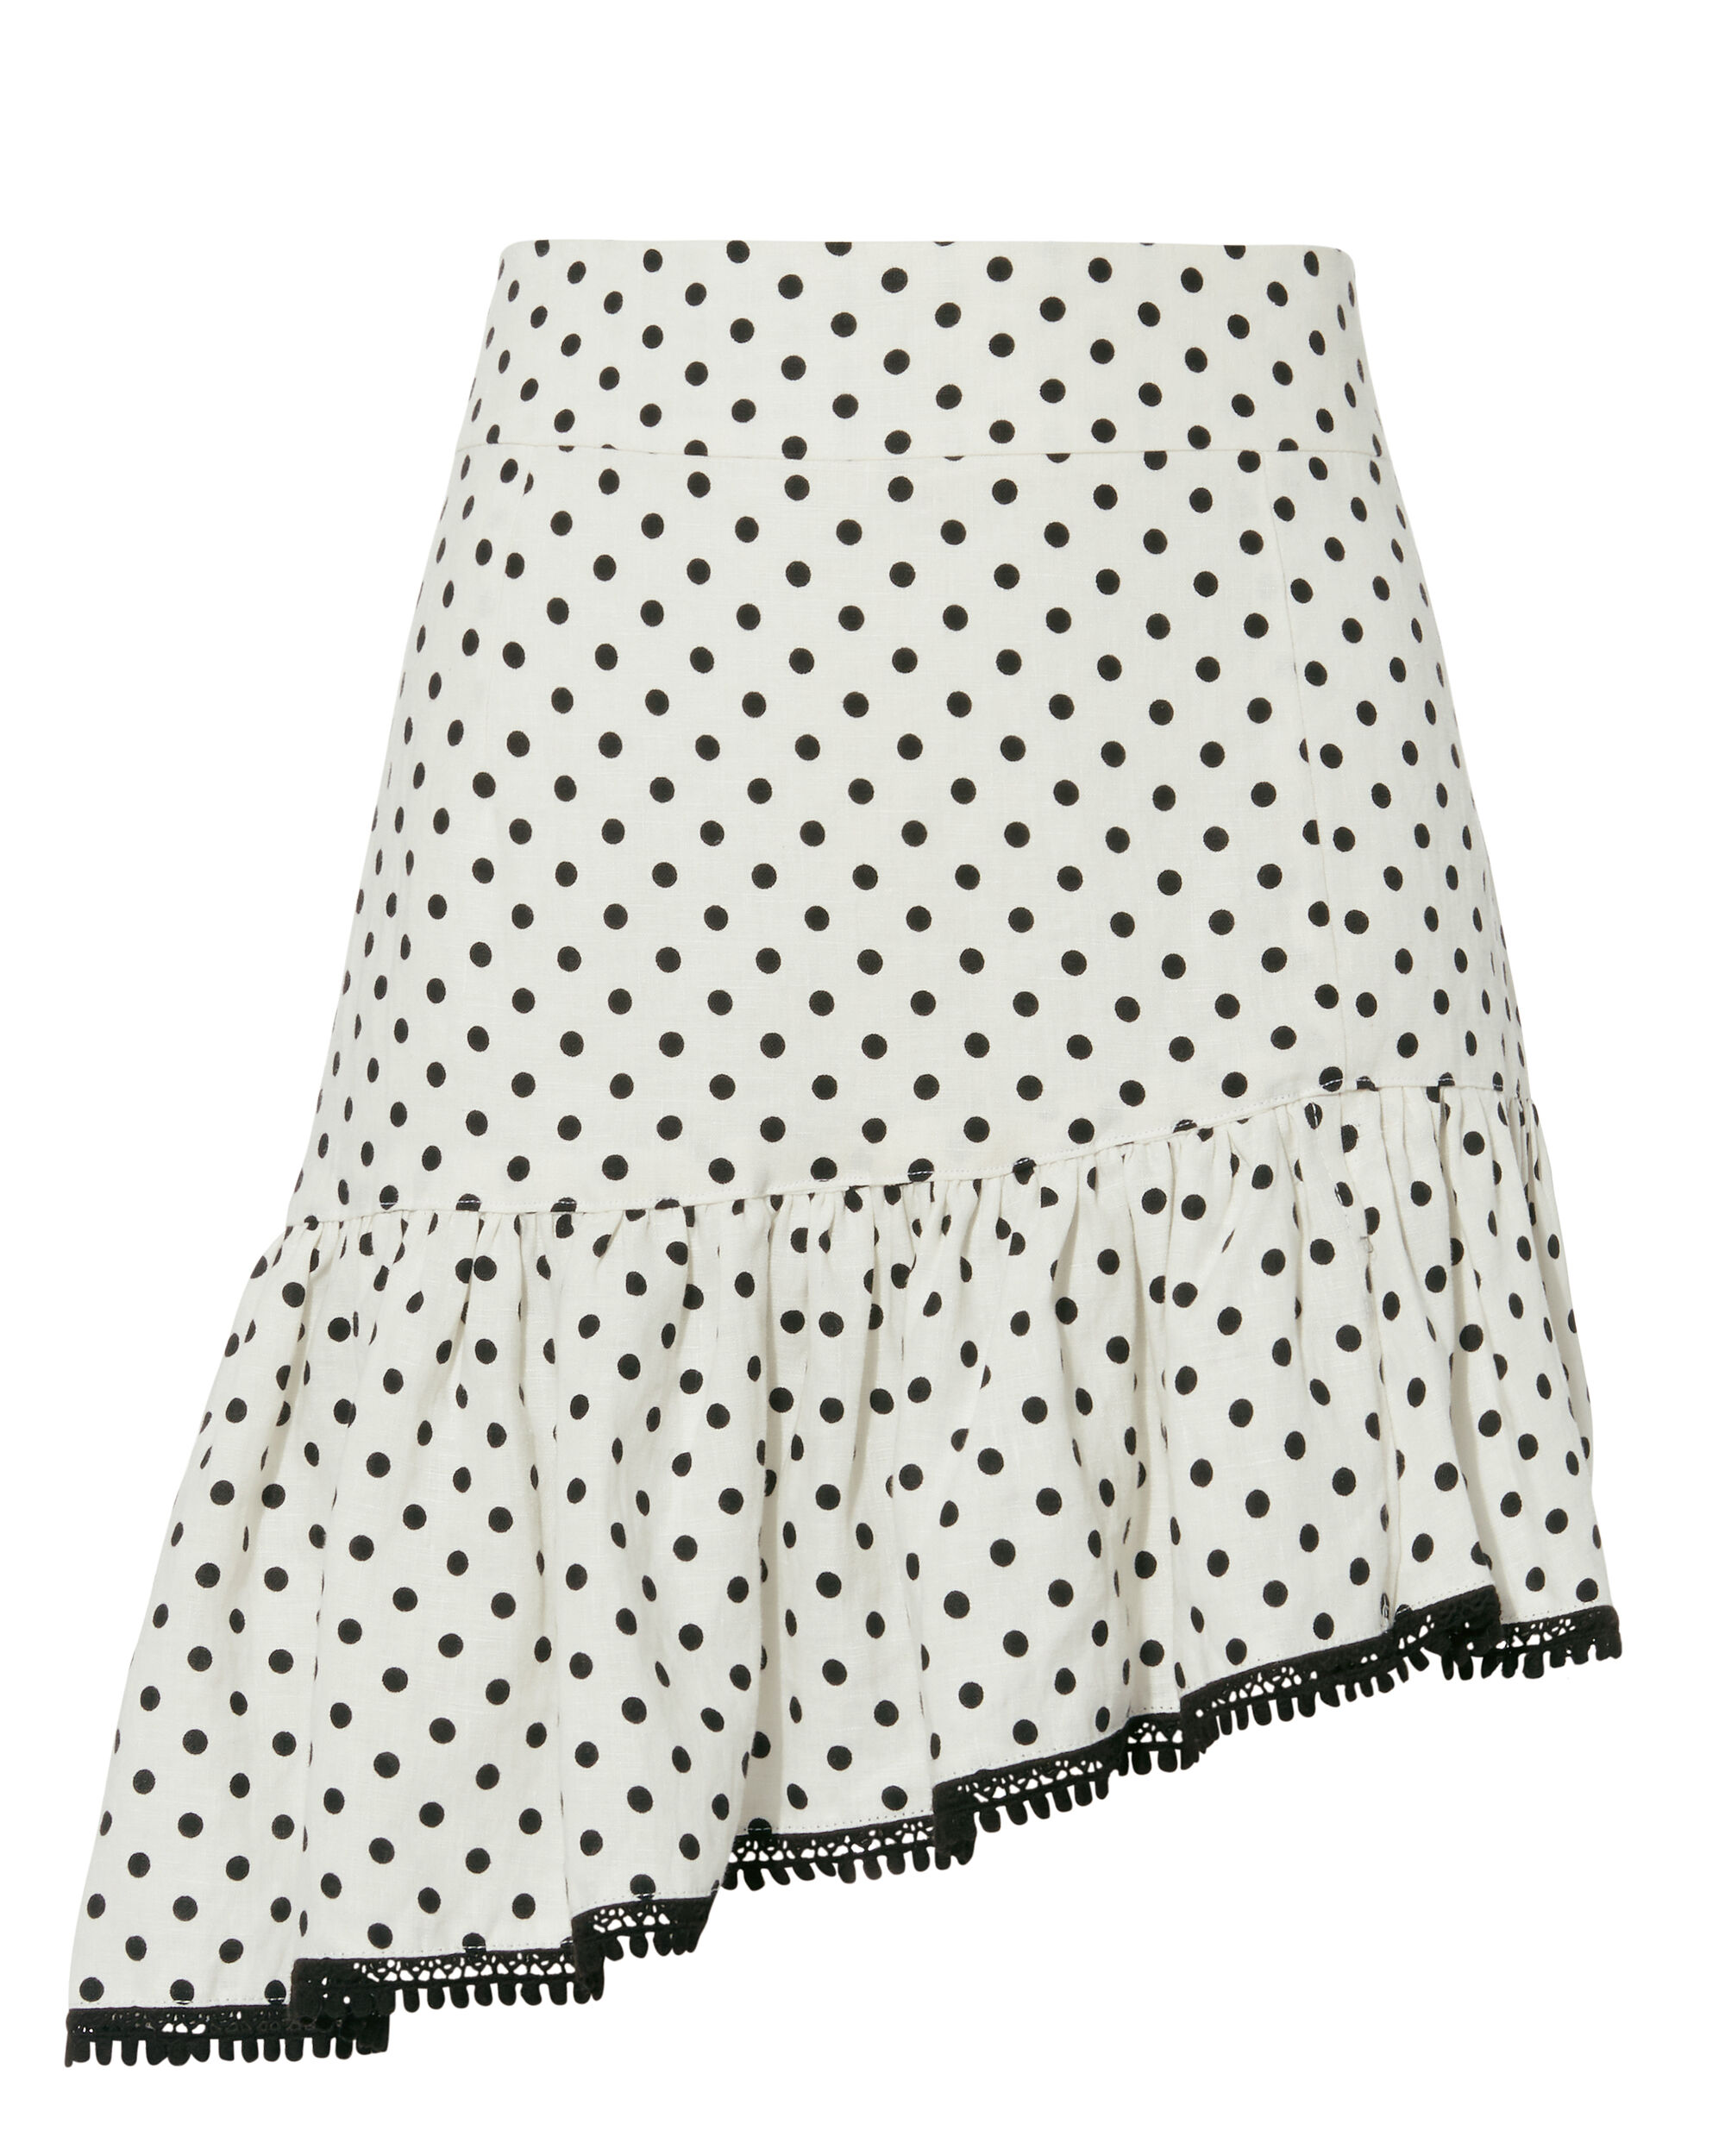 SUBOO Over & Over Frill Mini Skirt in White